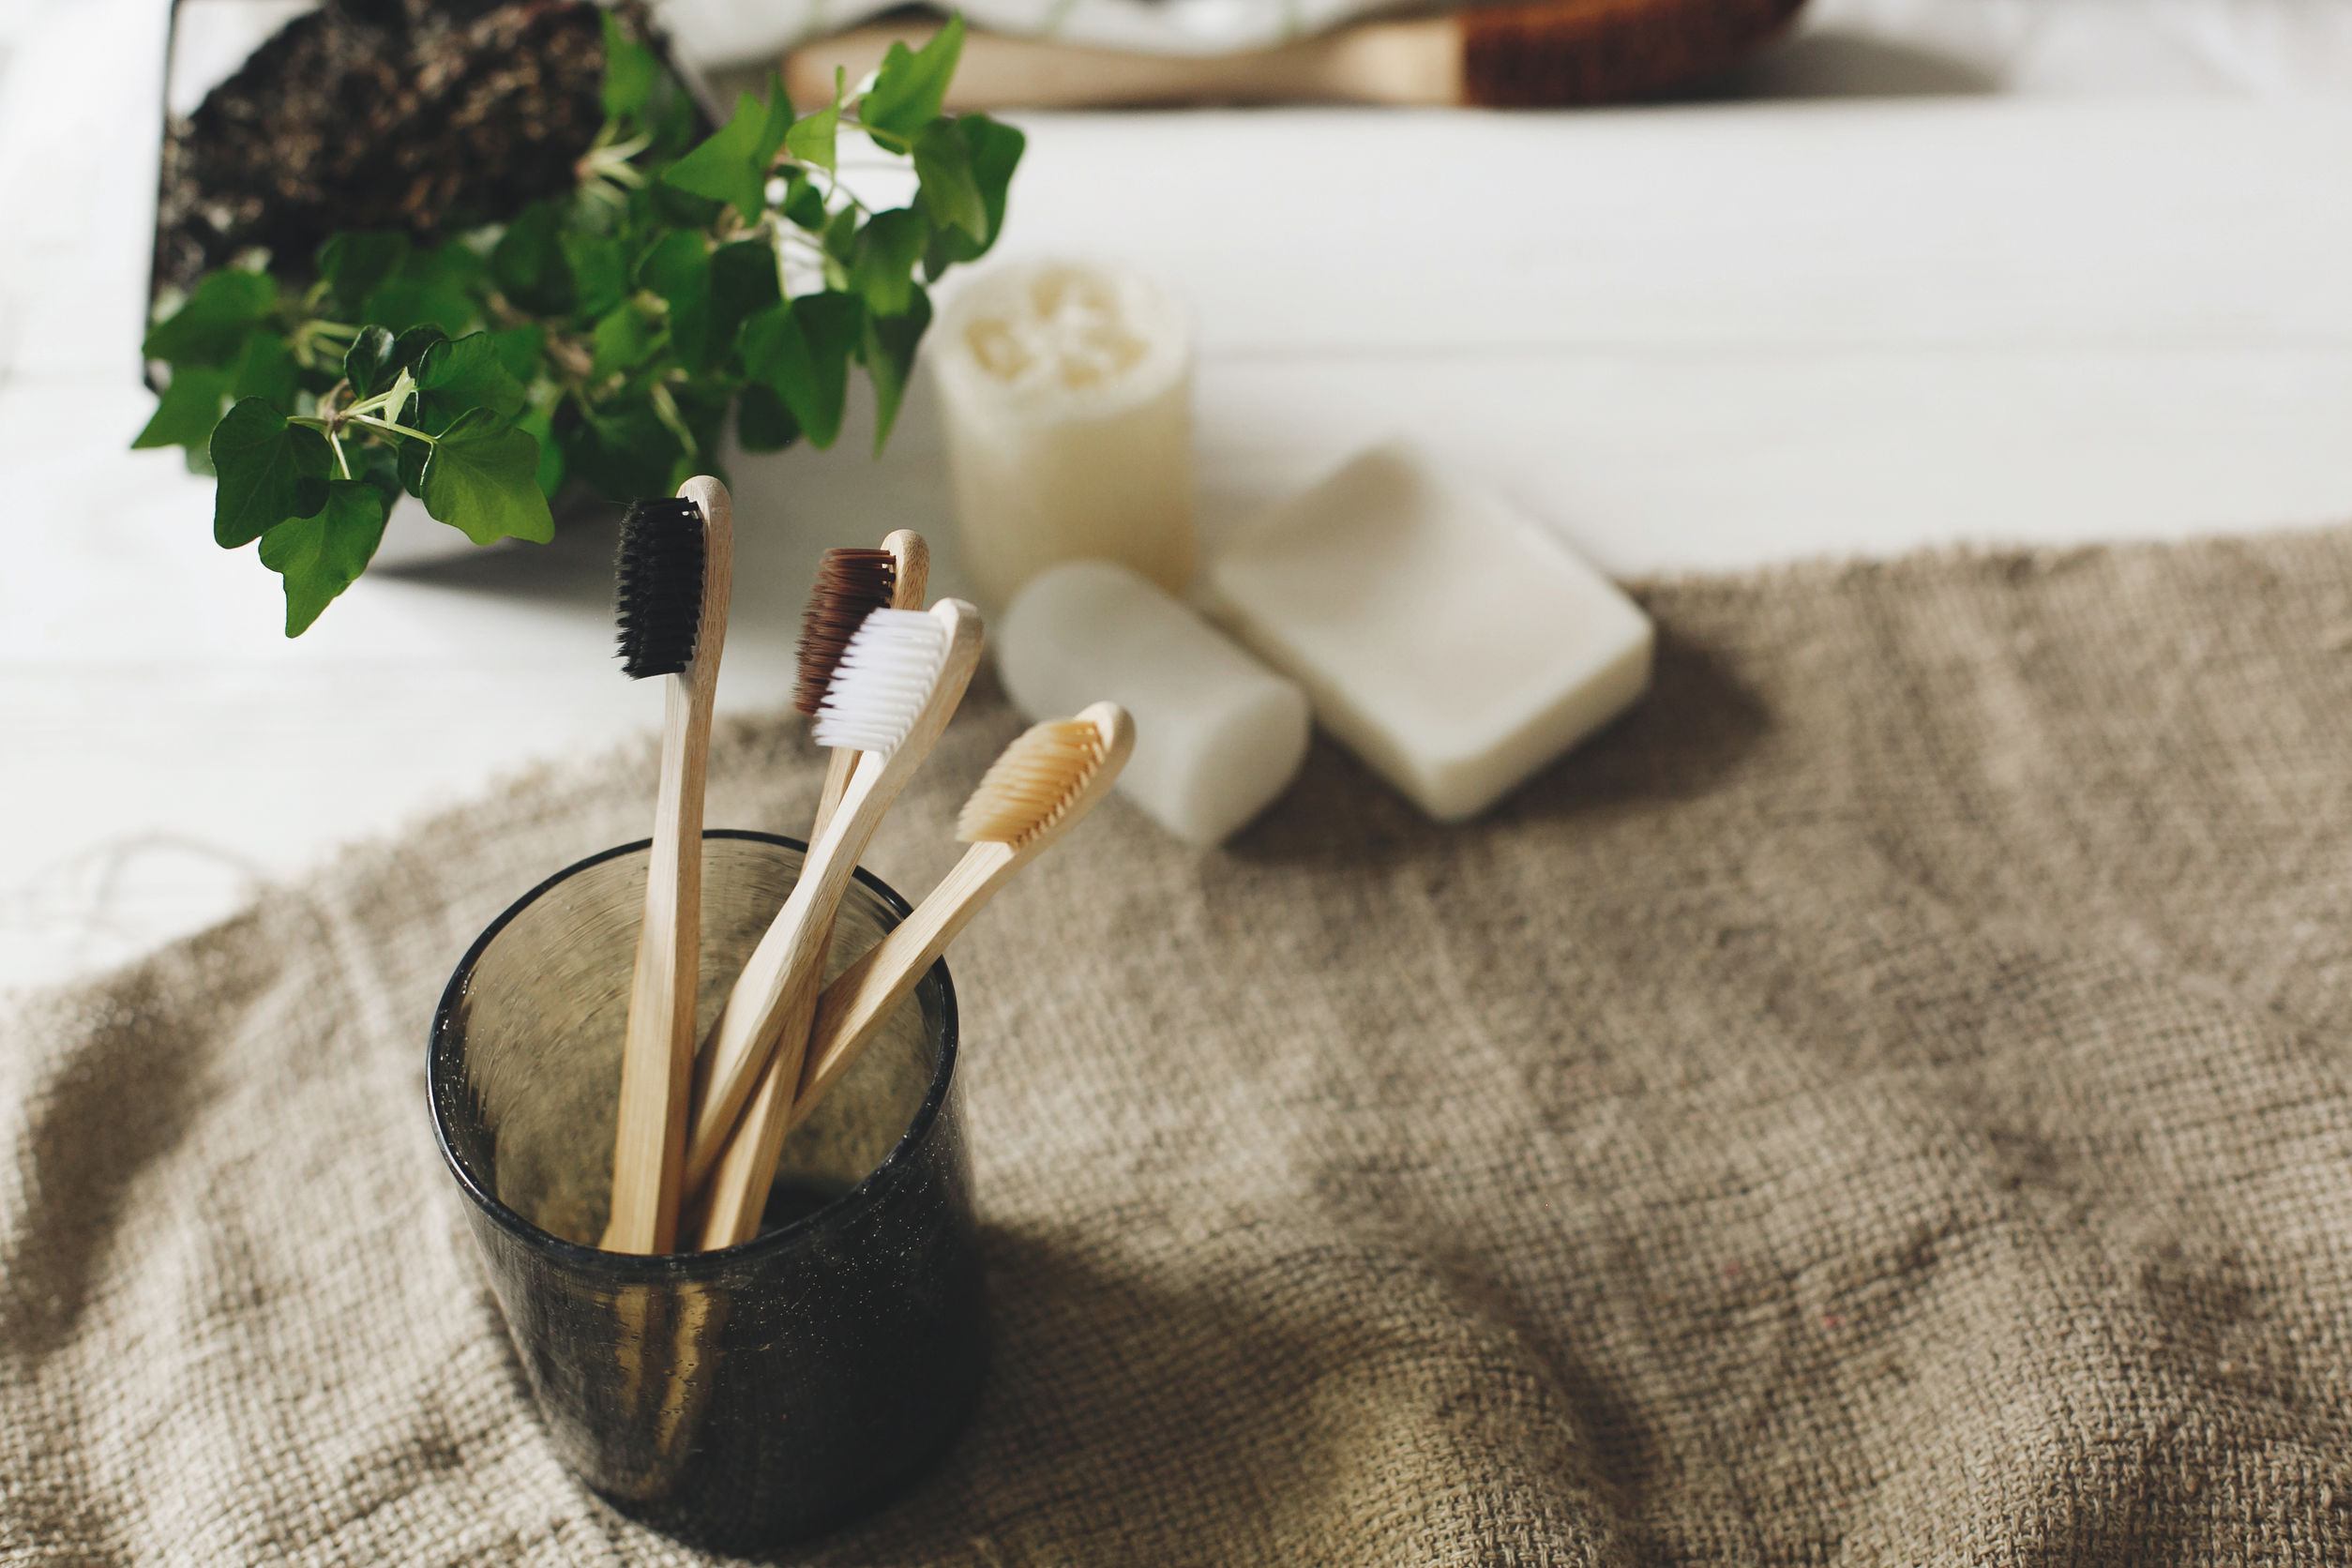 eco natural bamboo toothbrushes in glass